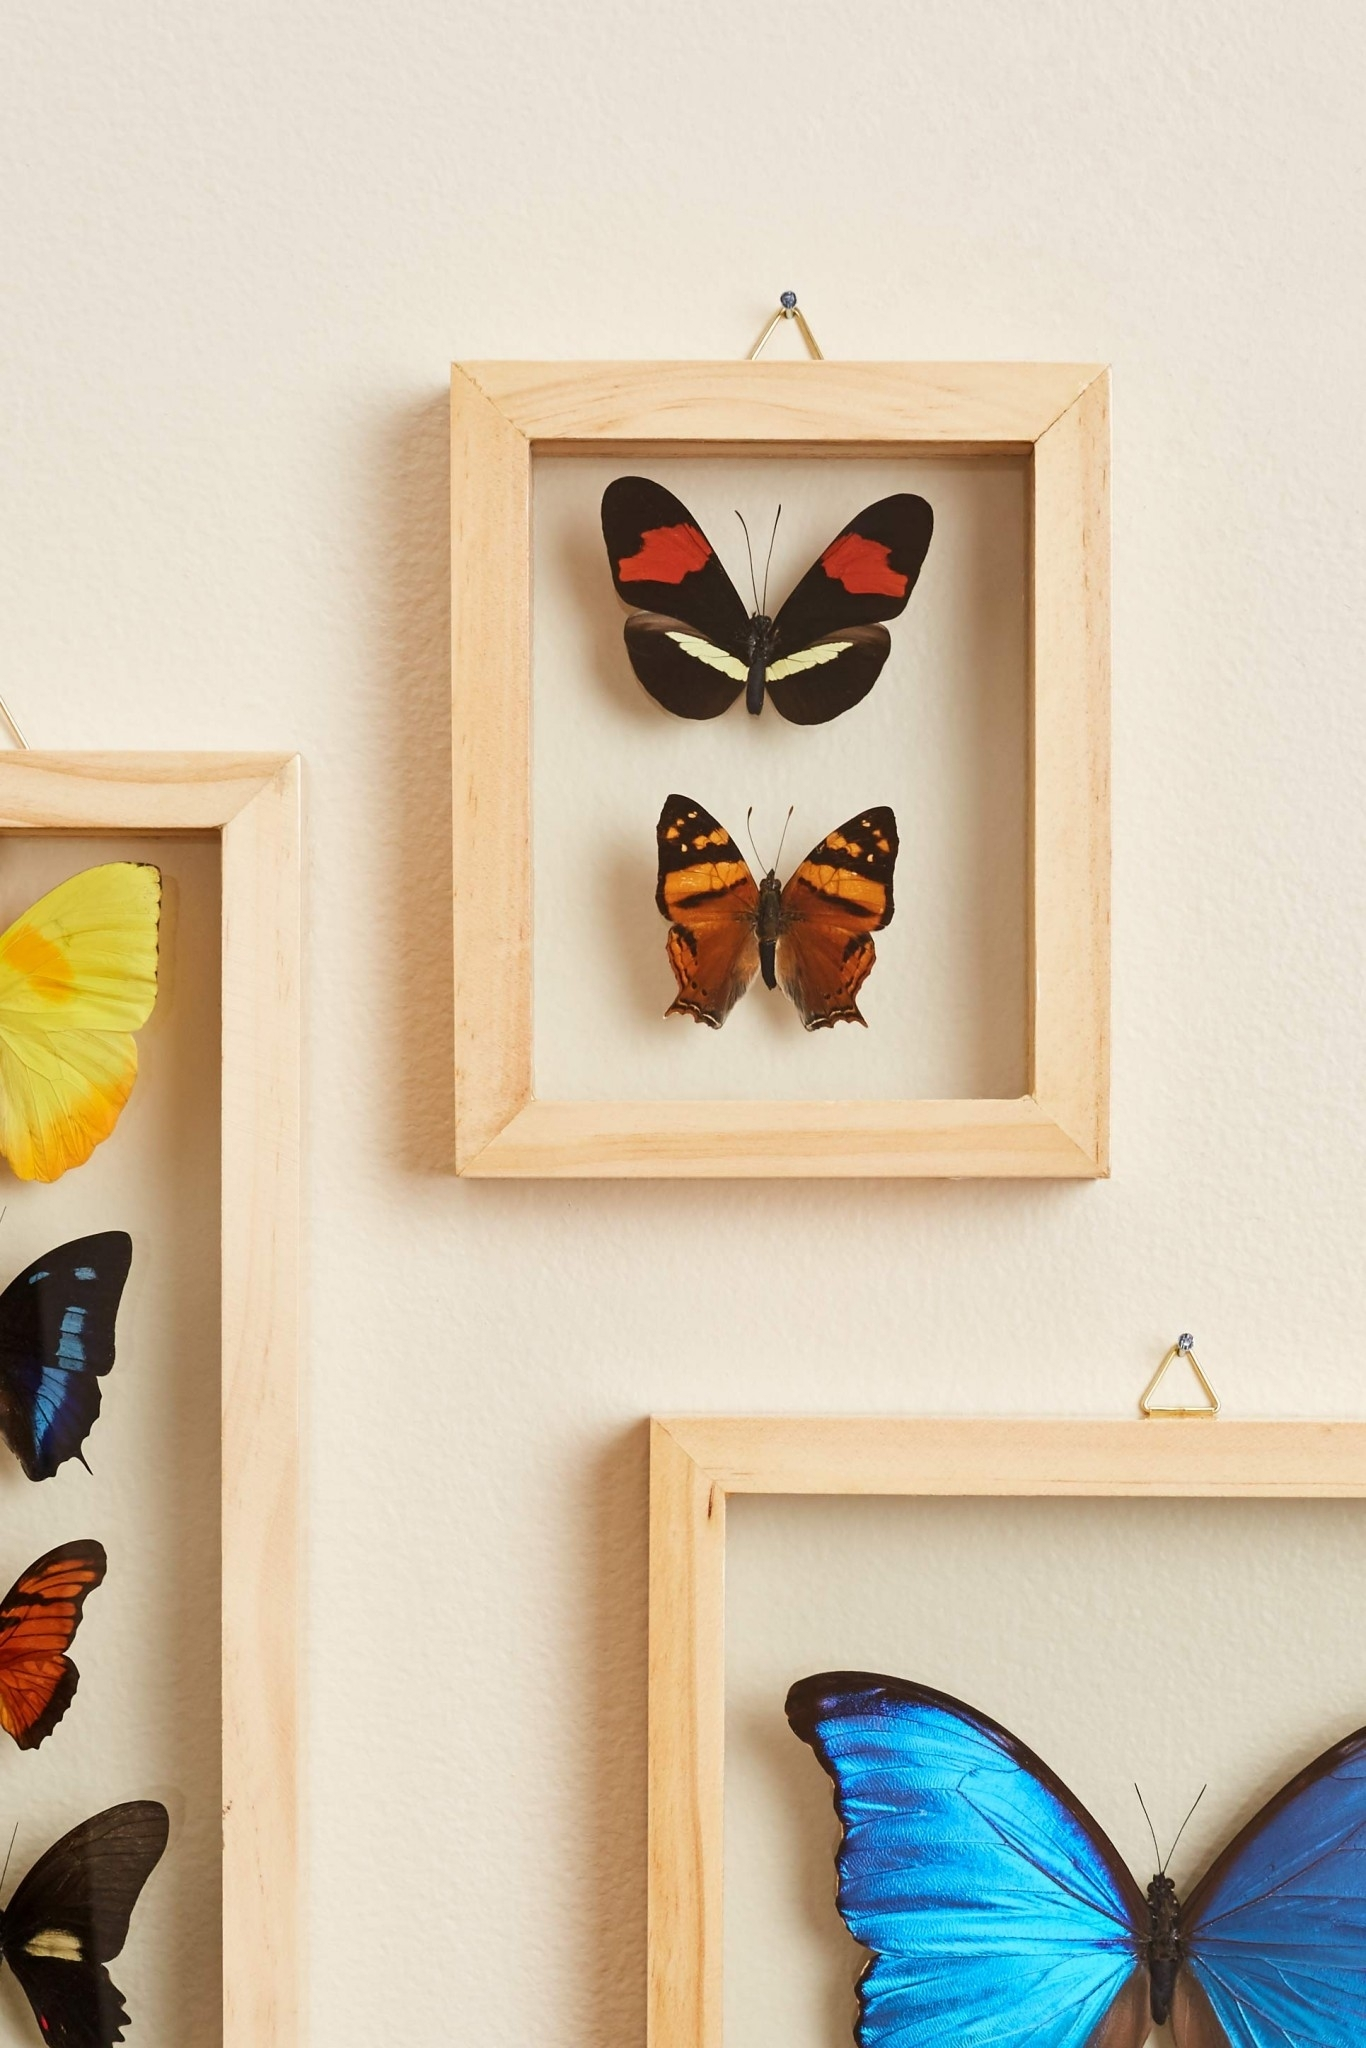 Search Results For: 'butterflies' – Earthbound Trading Co (View 10 of 15)